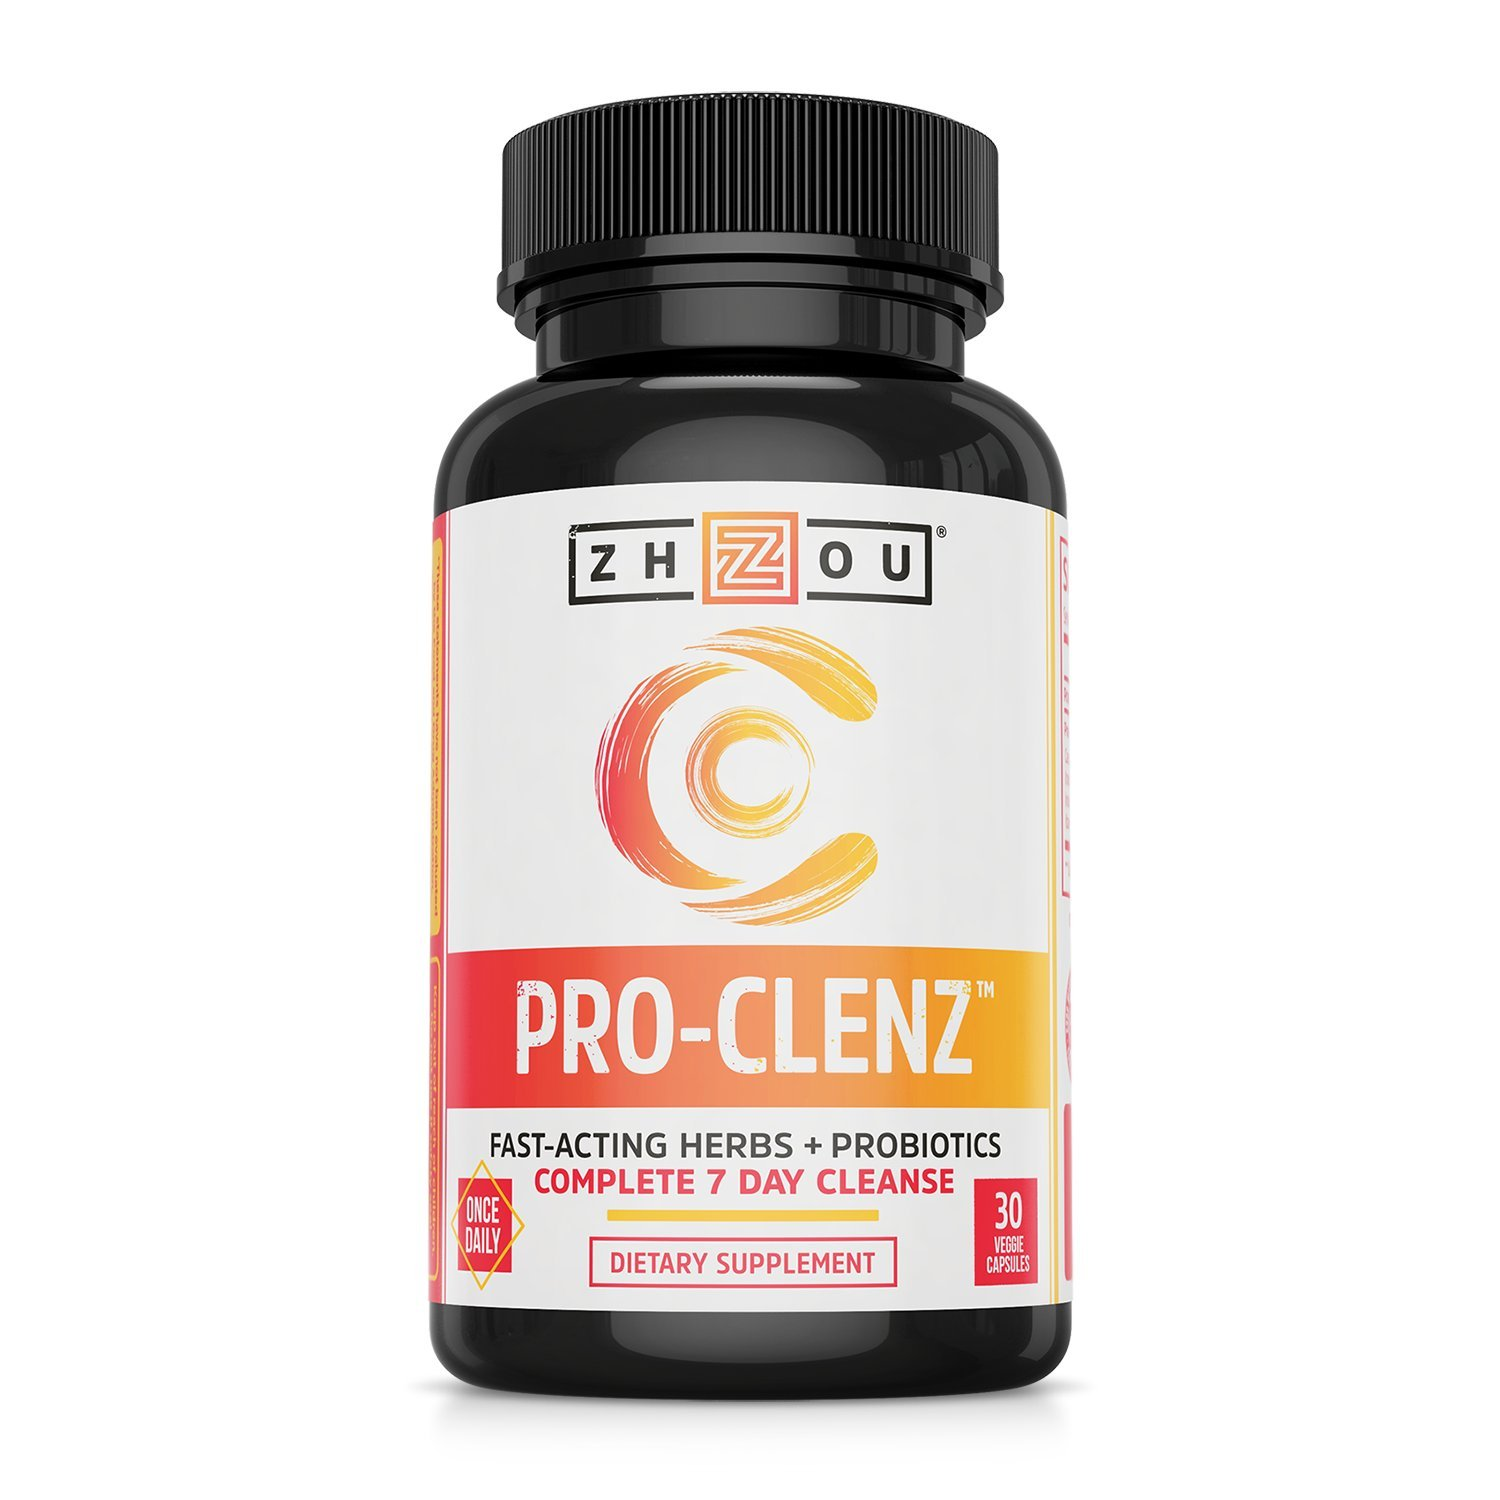 Pro-Clenz 7 Day Colon Cleanse Detox with Probiotics - Healthy Weight, Regularity and Digestion Formula - with Senna, Cascara Sagrada & Bacillus Coagulans - 30 Capsules